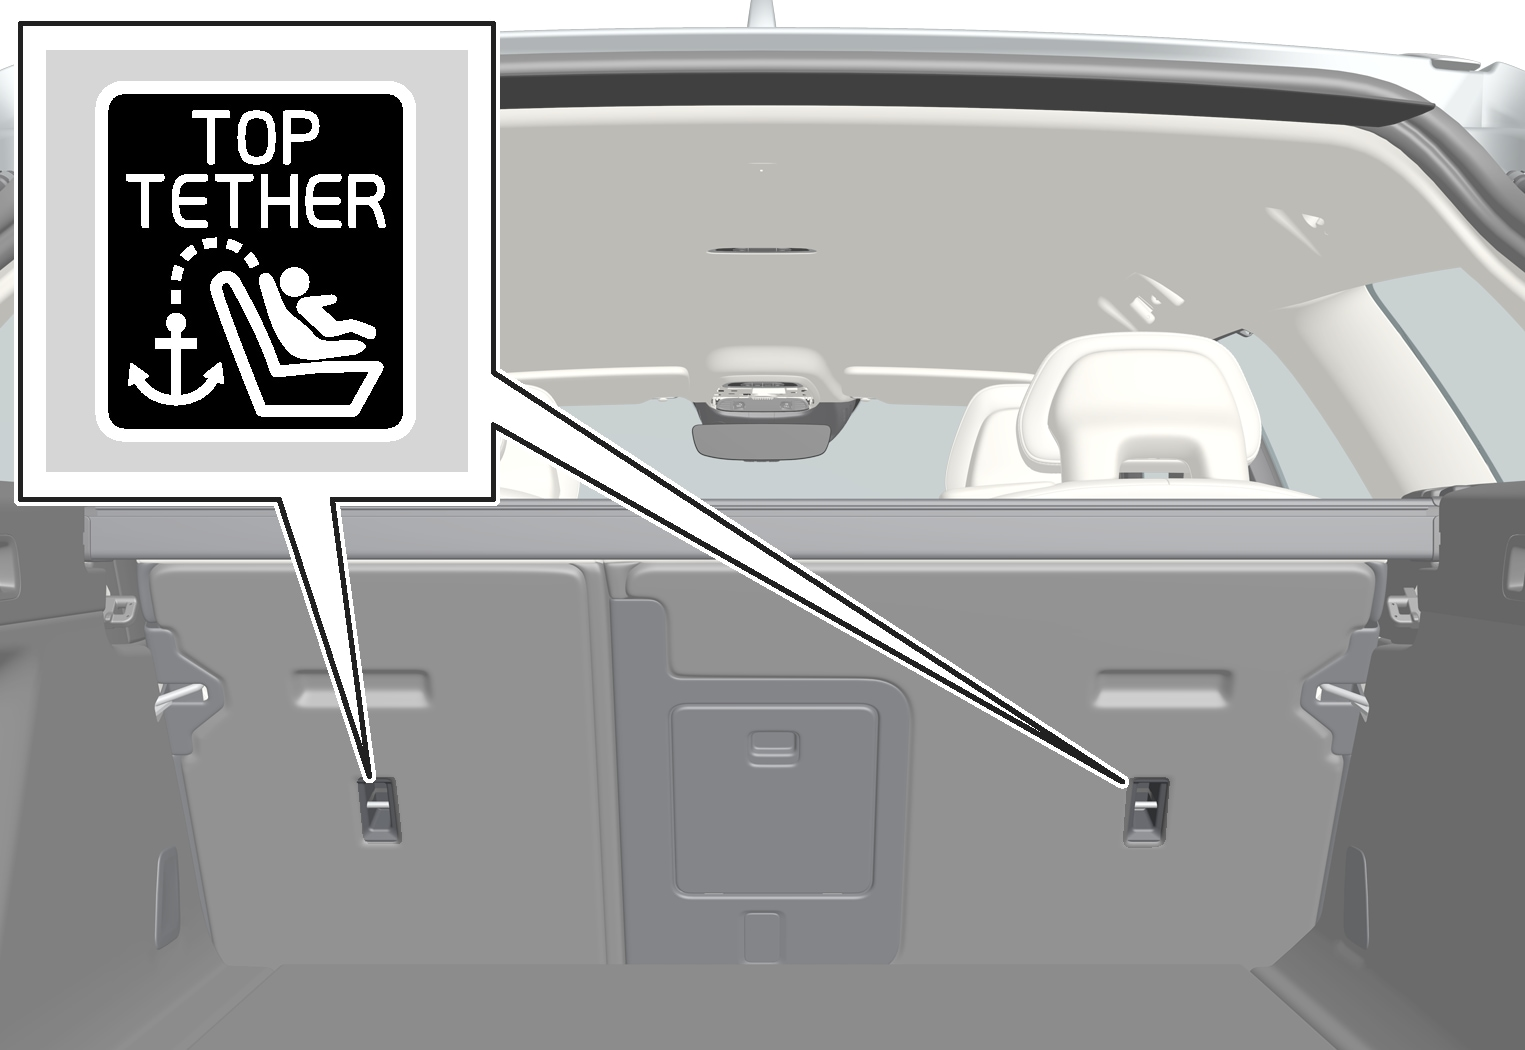 P5-1617-V90–Safety–Top tether position